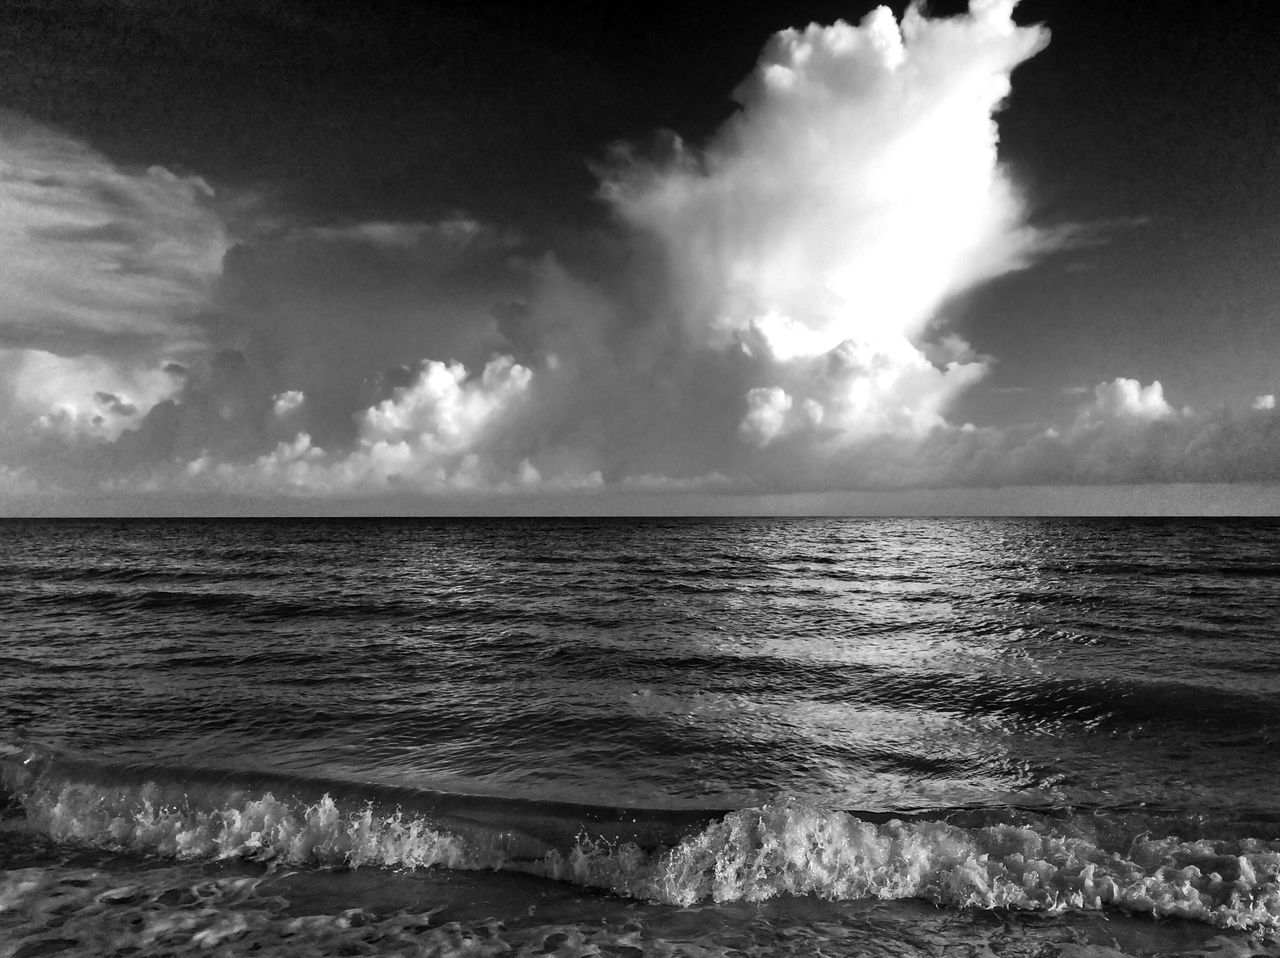 sea, horizon over water, water, scenics, sky, beauty in nature, tranquility, tranquil scene, nature, no people, idyllic, cloud - sky, beach, outdoors, wave, day